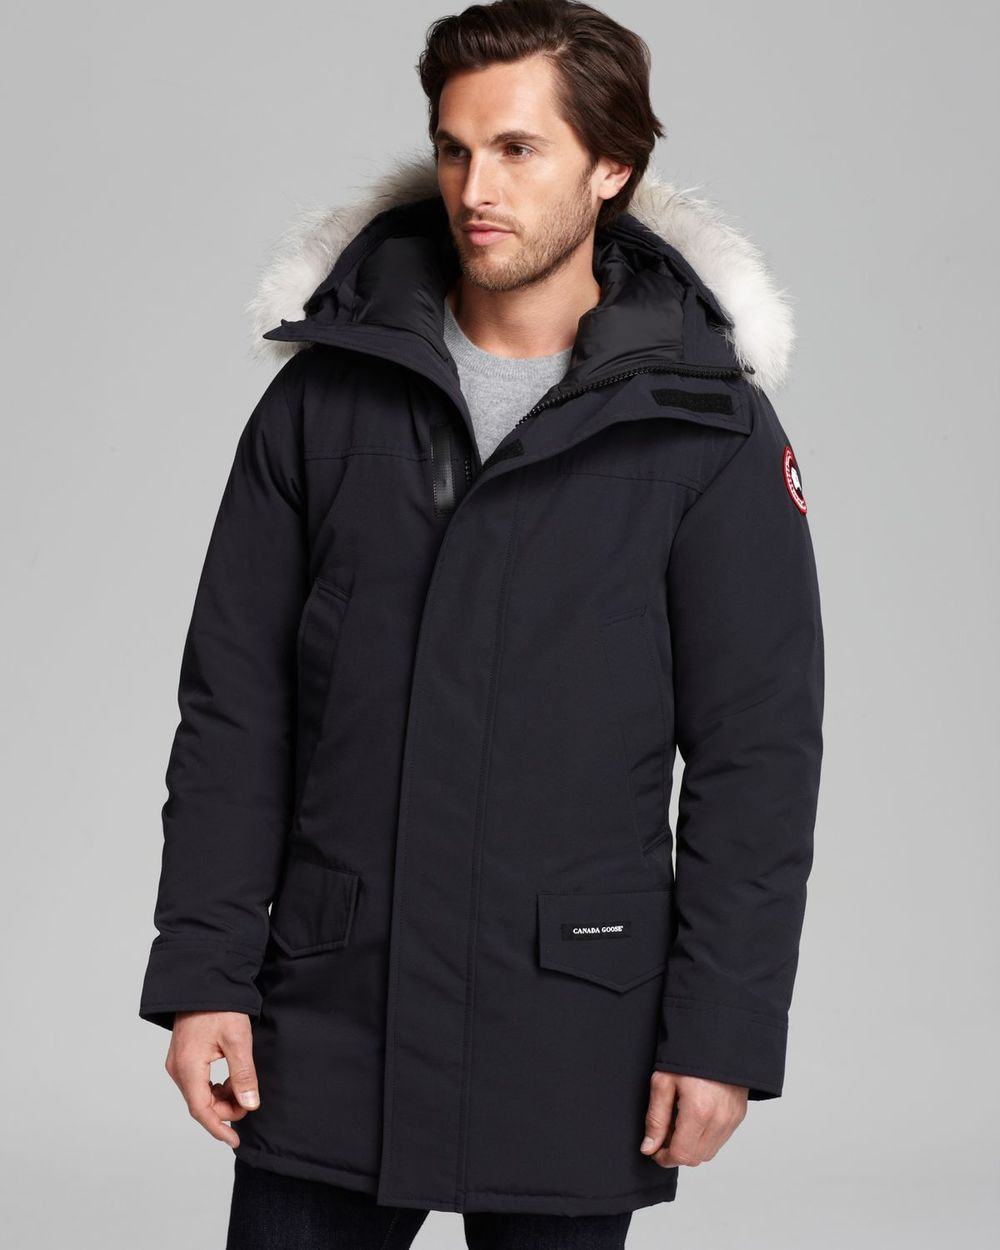 Canada Goose chilliwack parka replica store - 9 Canada Goose Alternatives To Fit Every Budget �� AS RAKESTRAW ...